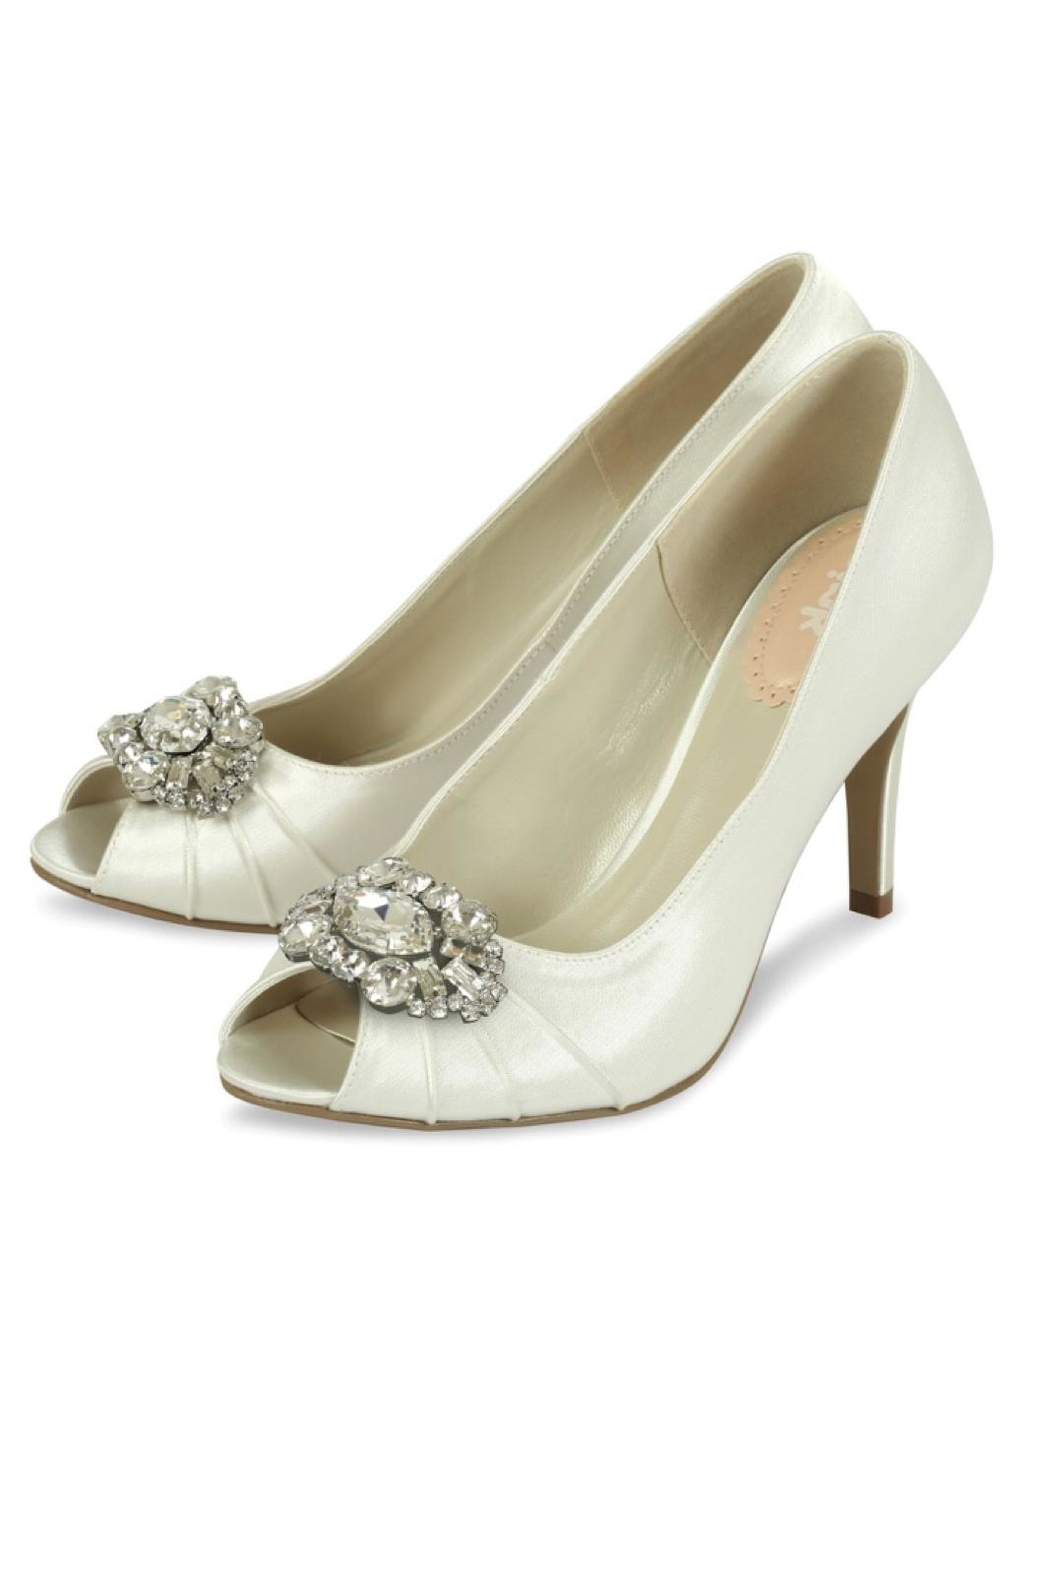 pink paradox London Tender Ivory Satin Shoes - Front Full Image